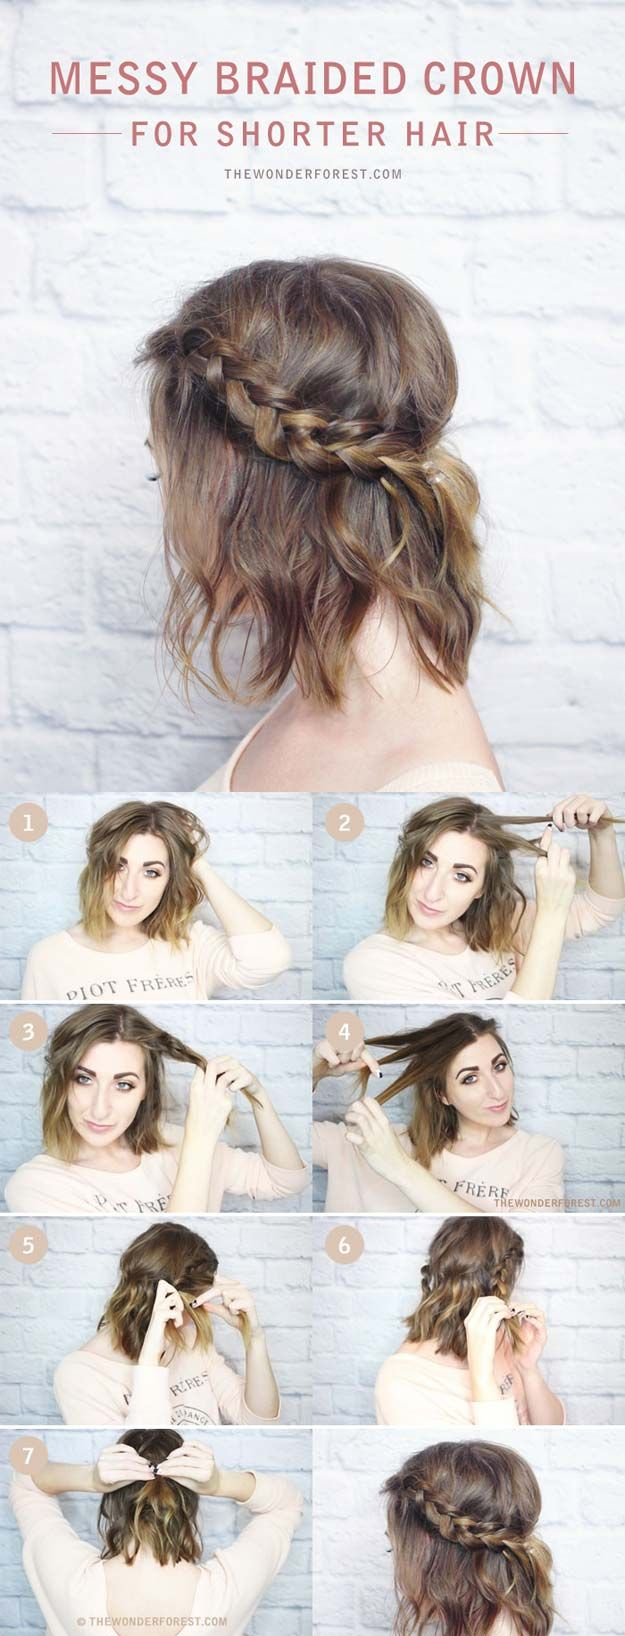 Festival Hair Tutorials - MESSY BRAIDED CROWN FOR SHORTER HAIR TUTORIAL - Short Quick and Easy Tutorial Guides and How Tos for Braids, Curly Hair, Long Hair, Medium Hair, and that Perfect Updo - Great Ideas for That Summer Music Edm Show, Whether It's A New Hair Color or Some Awesome Accessories and Flowers - Boho and Bohemian Styles with Glitter and a Headband - thegoddess.com/festival-hair-tutorials